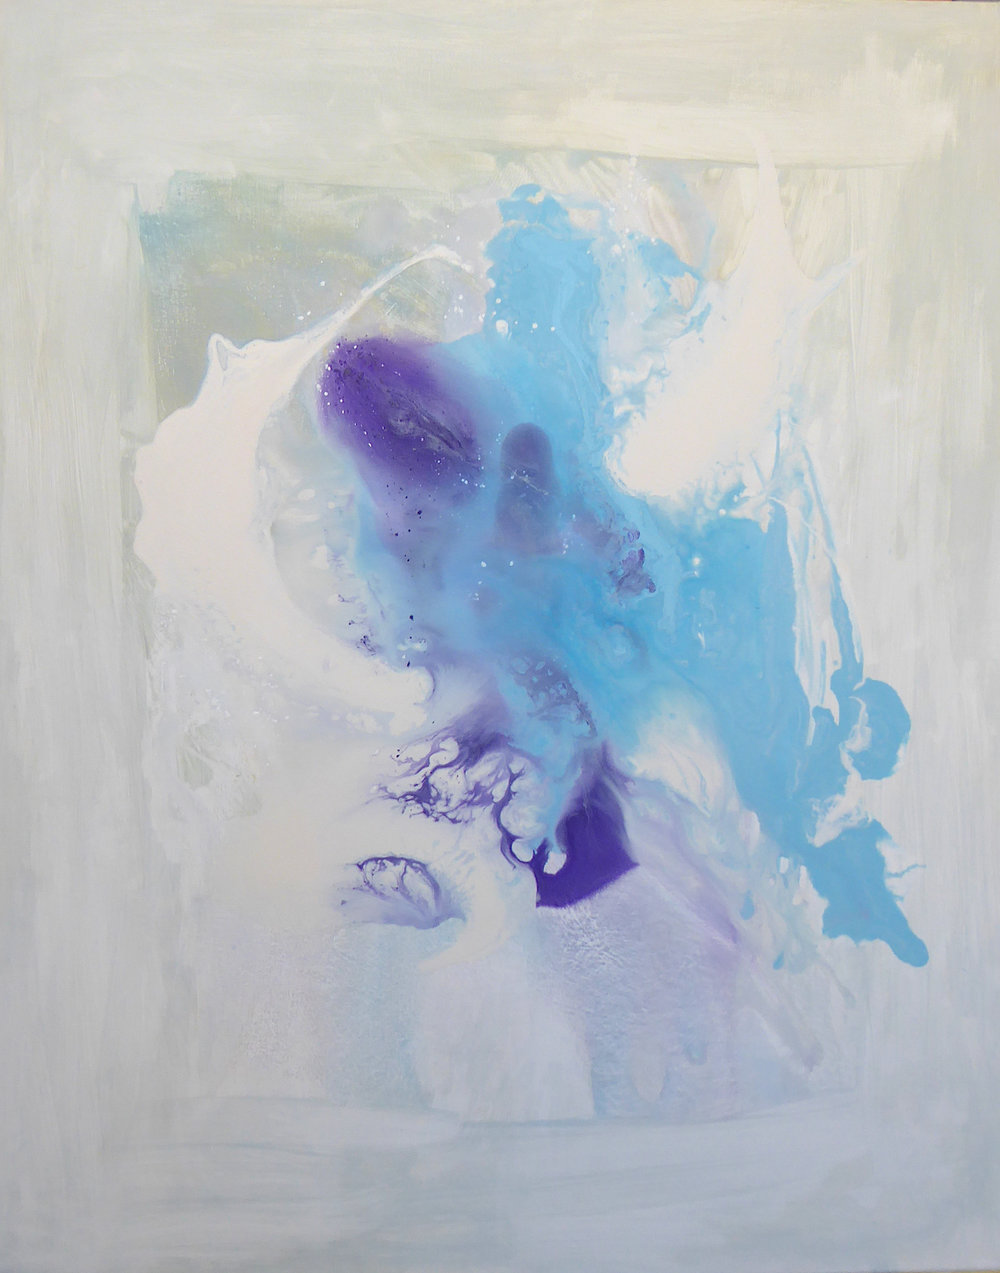 Ice Flo no. 2 (Series 2018)  acrylic on canvas 80 x 40 cm  Corinna Boughton